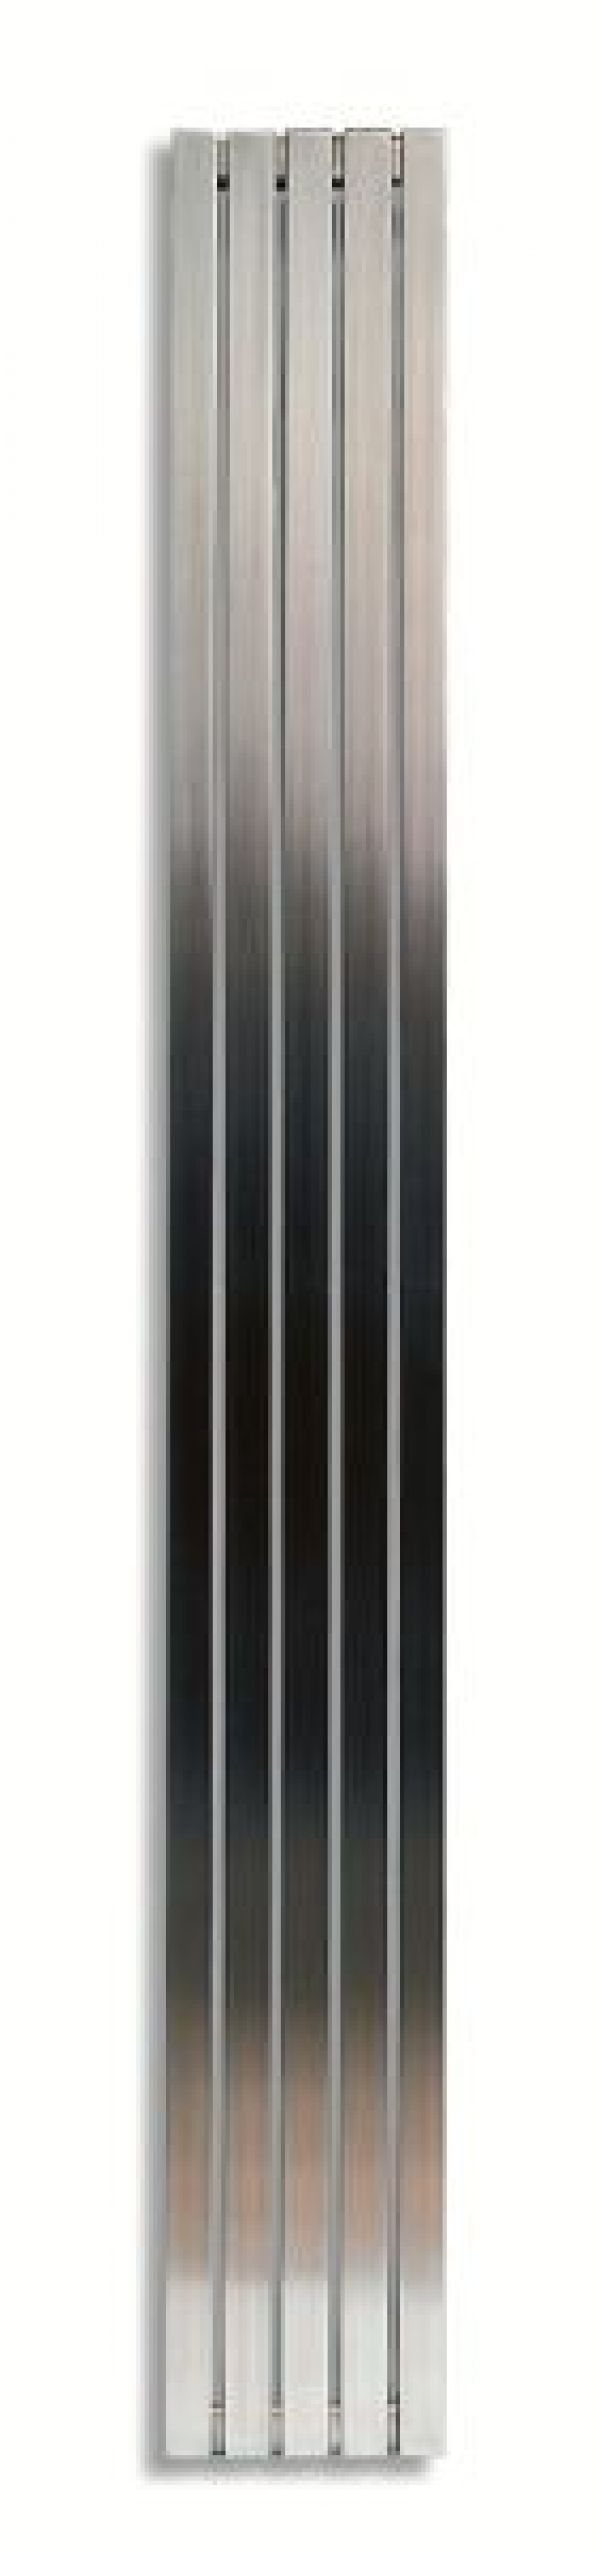 radiateur design inox style. Black Bedroom Furniture Sets. Home Design Ideas